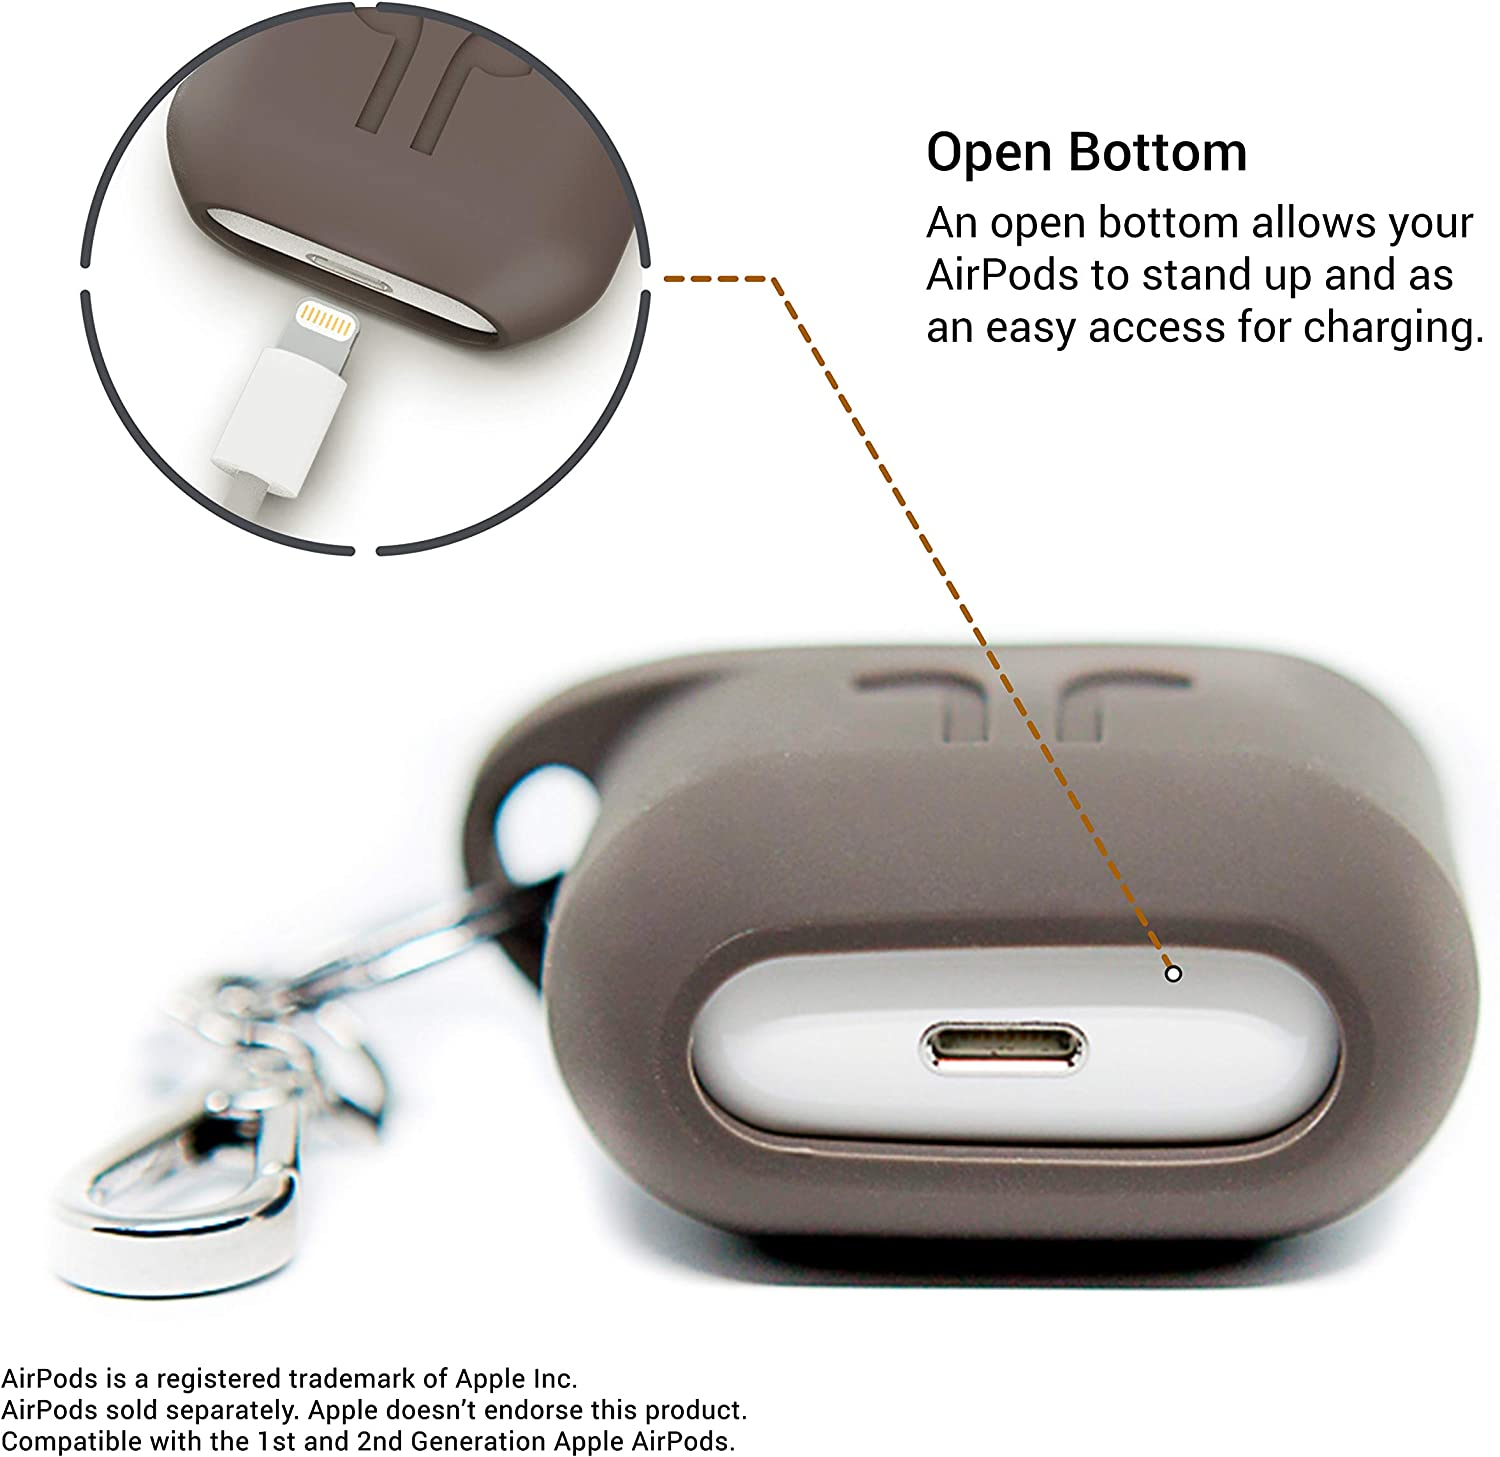 PodPocket Scoop AirPod Storage Case with Protective Translucent Silicone and Impact Protection Cocoa Gray